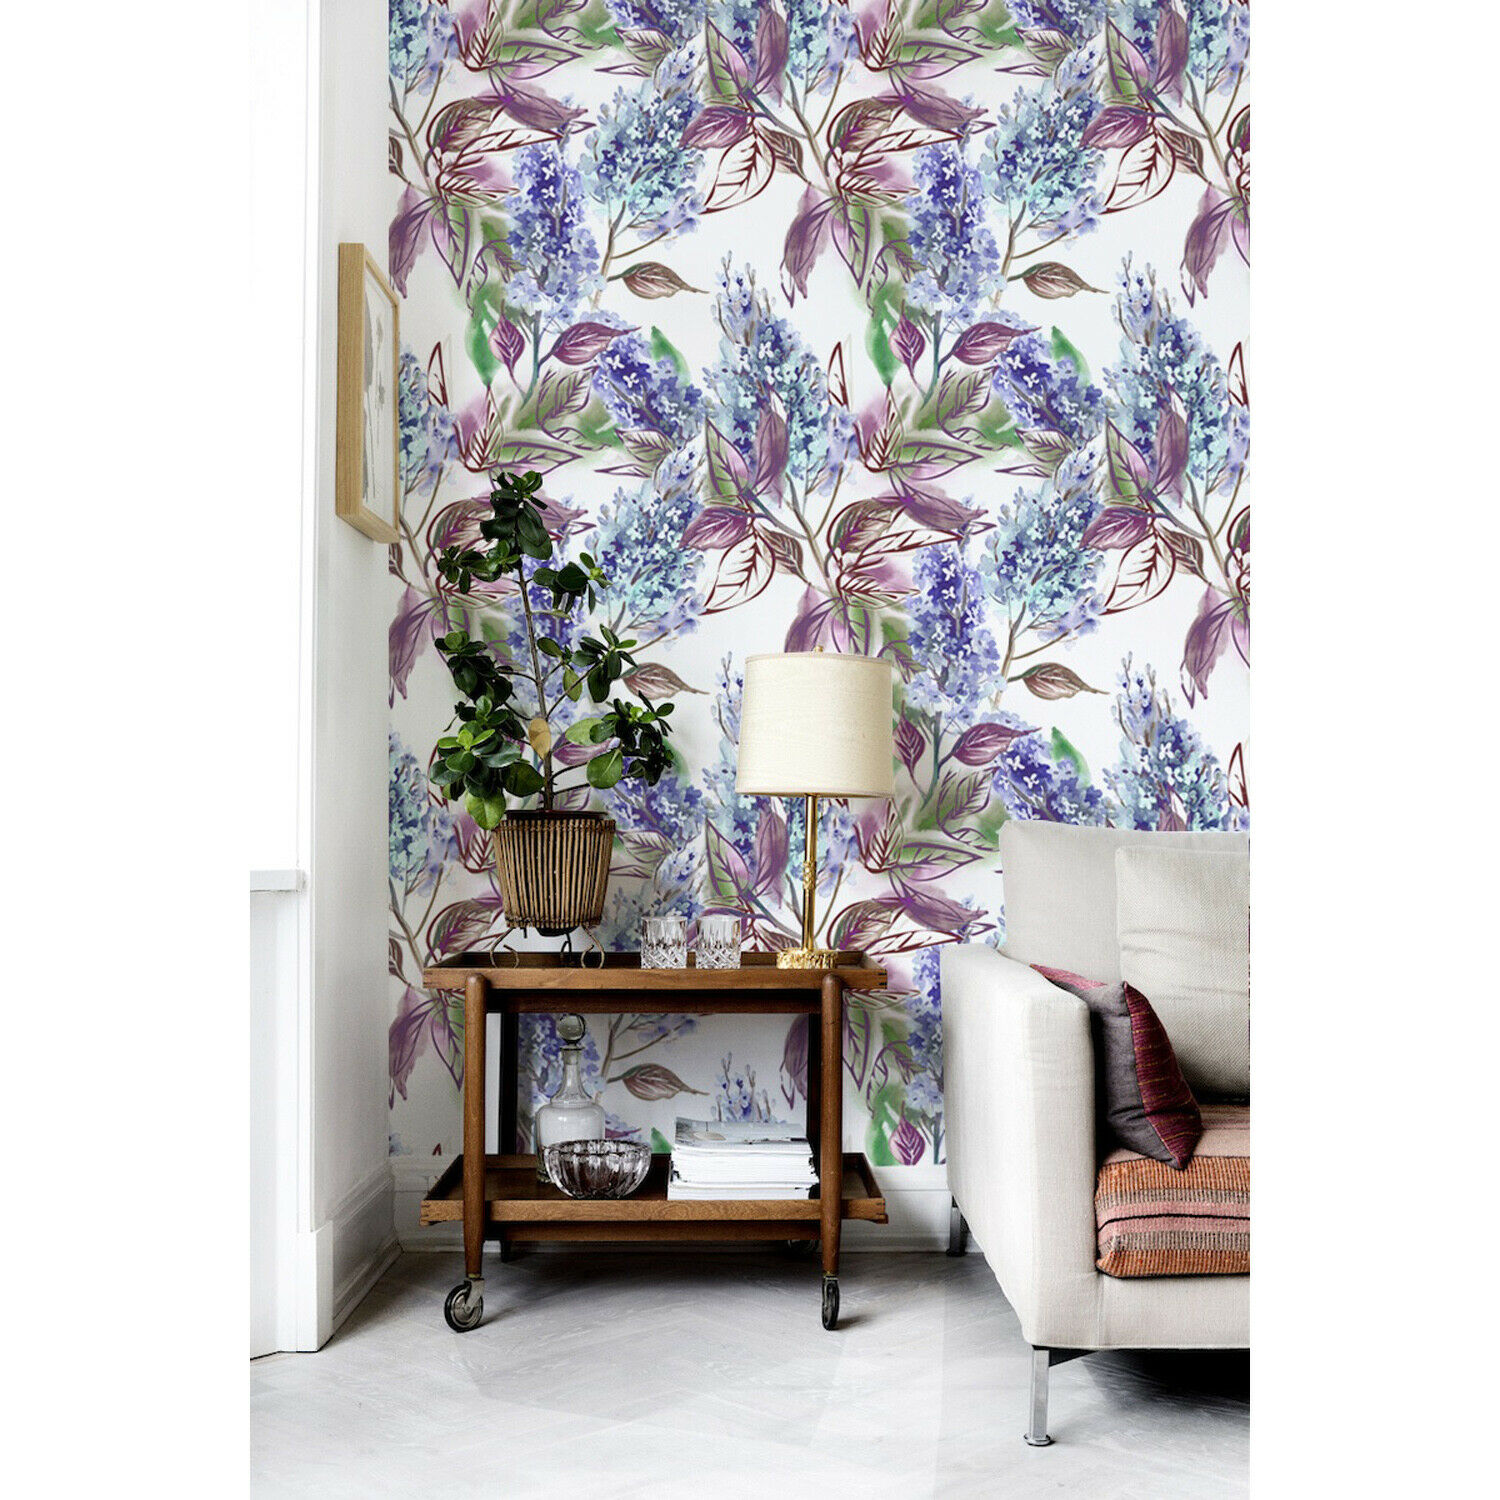 Lilac WaterFarbe Non-woven wallpaper lila Flowers i Illustration Wall Mural